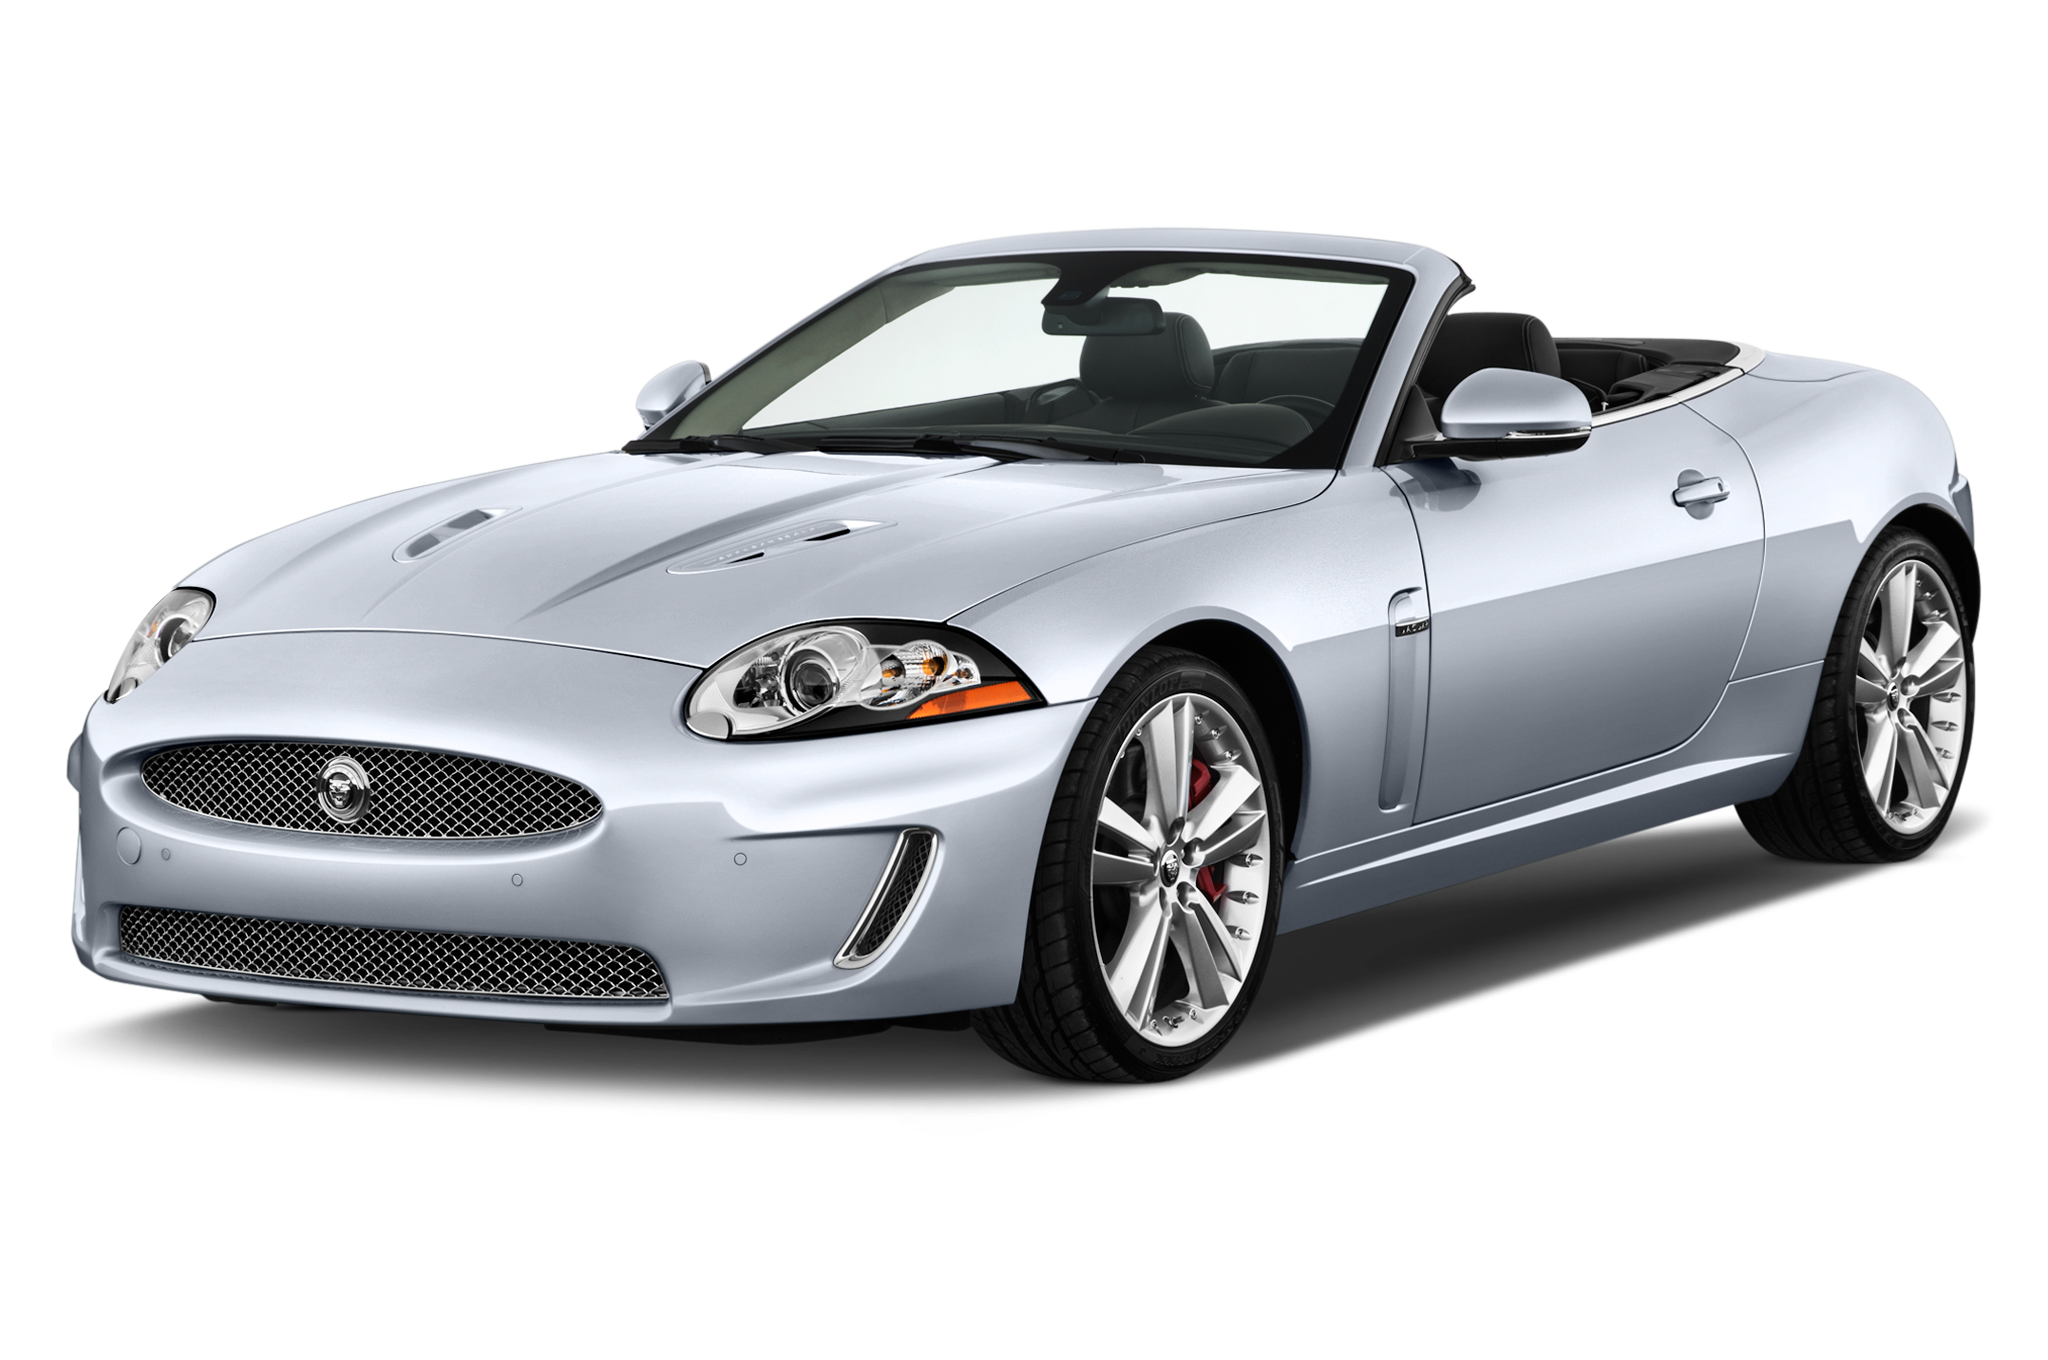 and offering garcia company perfect at car find cars leasing jaguar for affordable convertible compare price the xk rose competitive our deals bmw are to you by each pinterest pin roxanne most right on